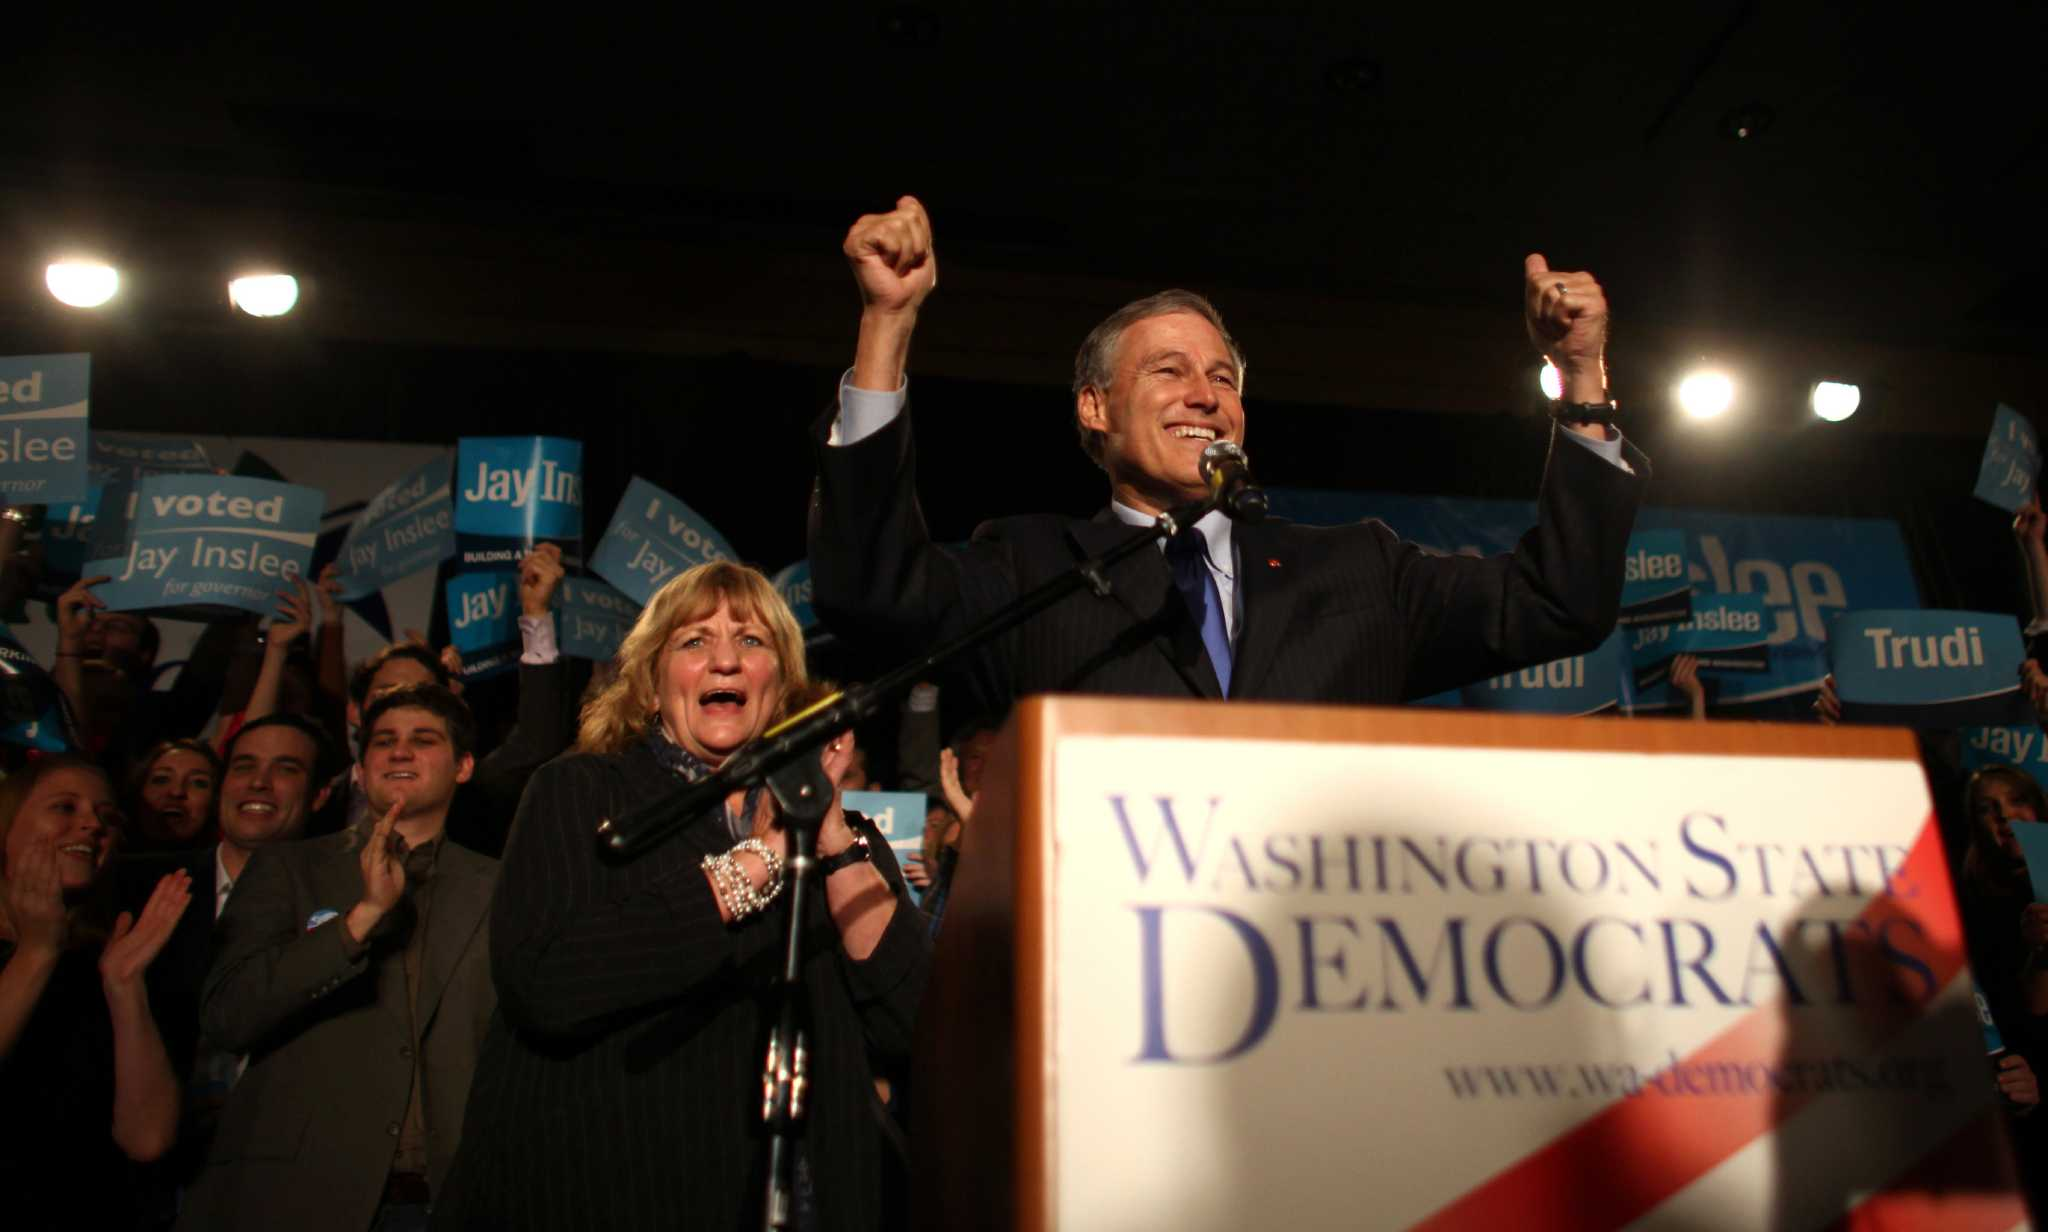 Inslee leads; governor's race too close to call ...